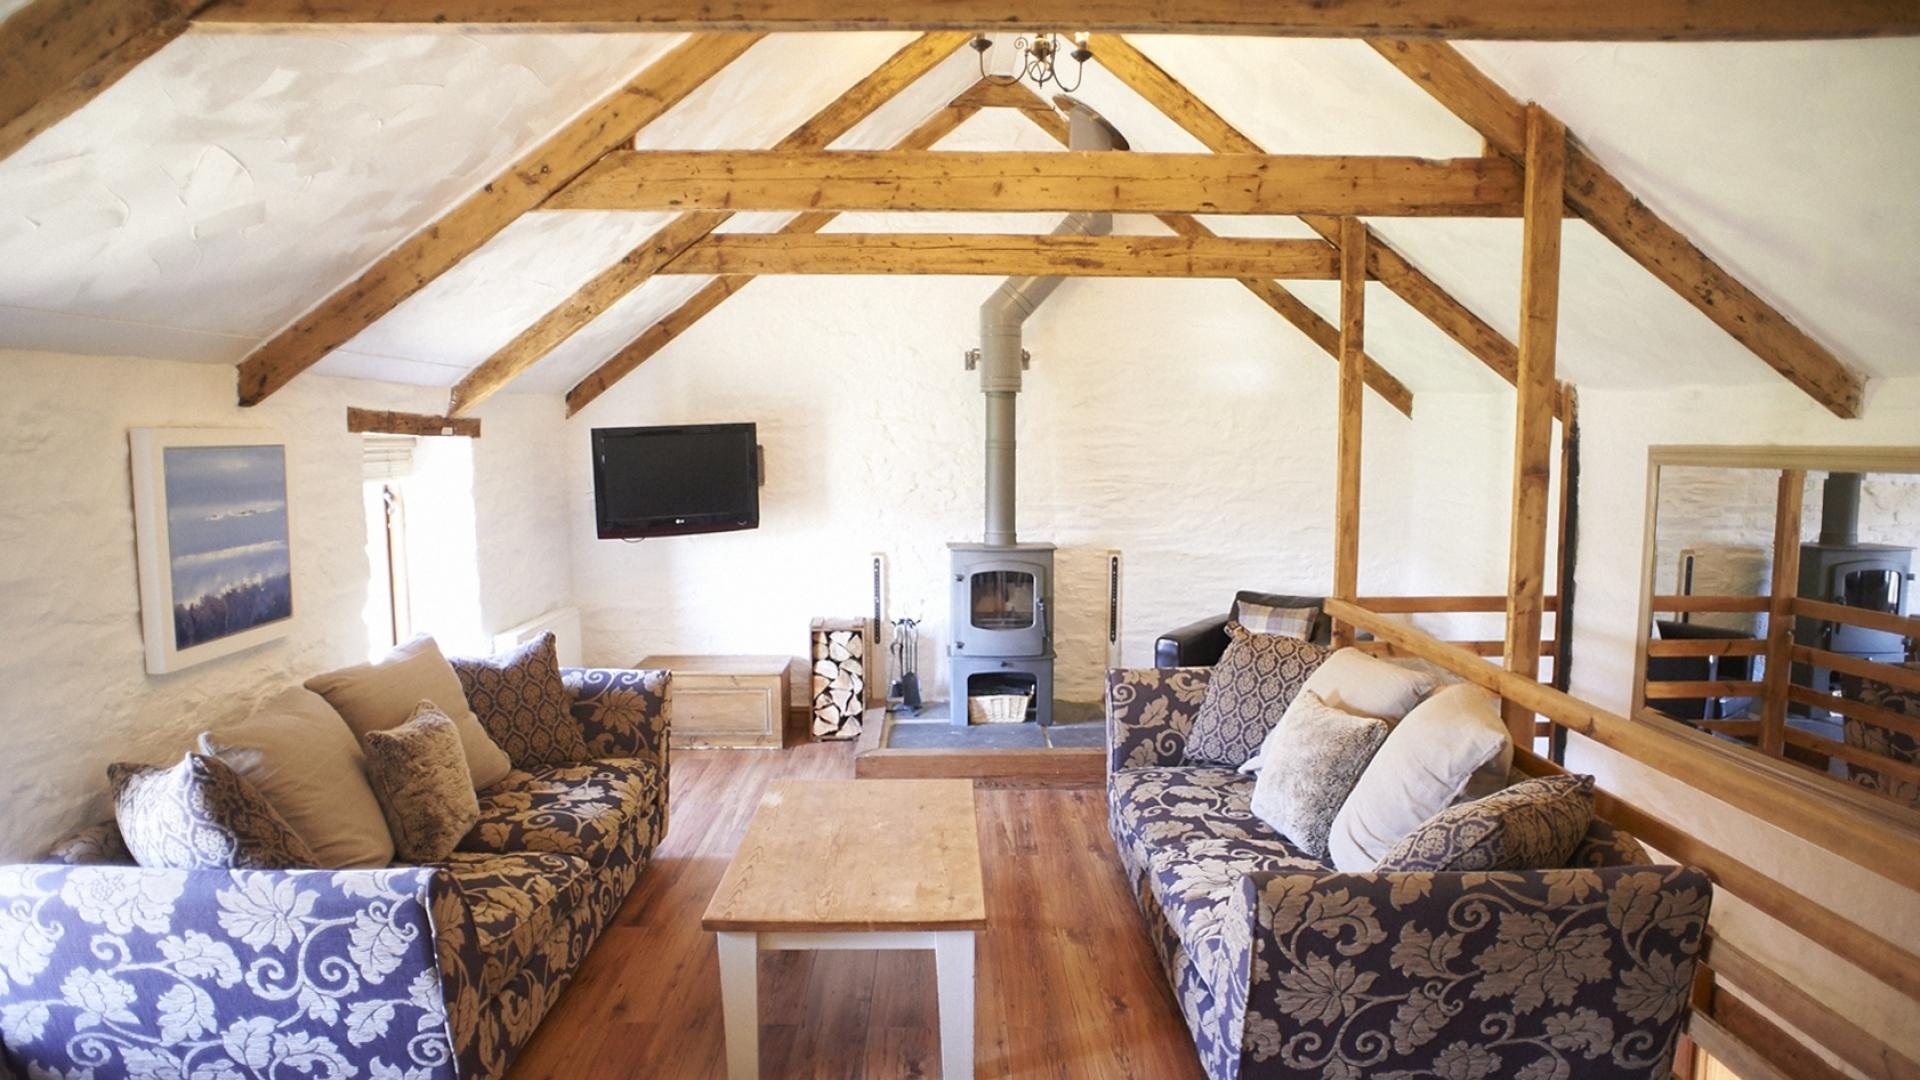 3 Bedroom Barn conversion in Cornwall, United Kingdom